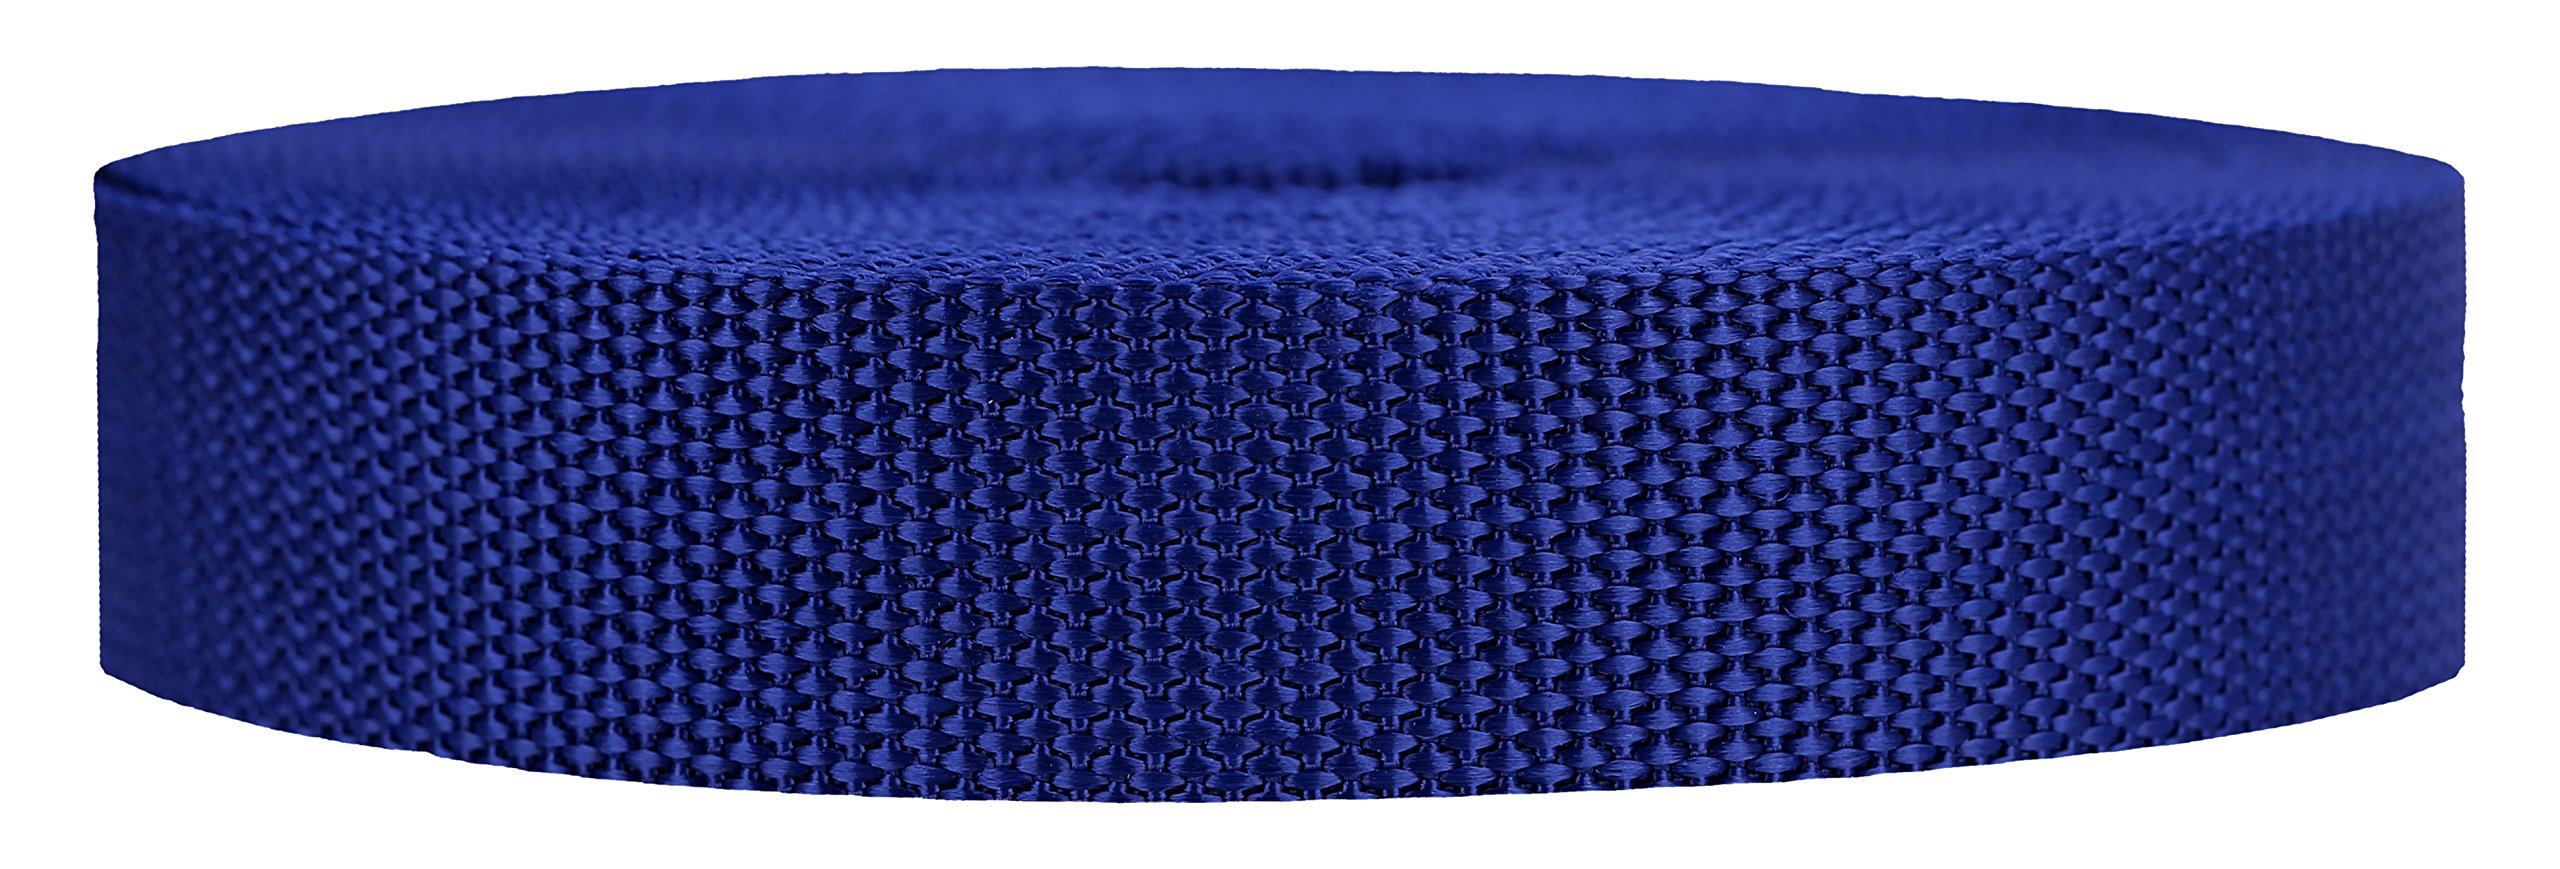 Strapworks Heavyweight Polypropylene Webbing - Heavy Duty Poly Strapping for Outdoor DIY Gear Repair, 1 Inch x 50 Yards - Navy Blue by Strapworks